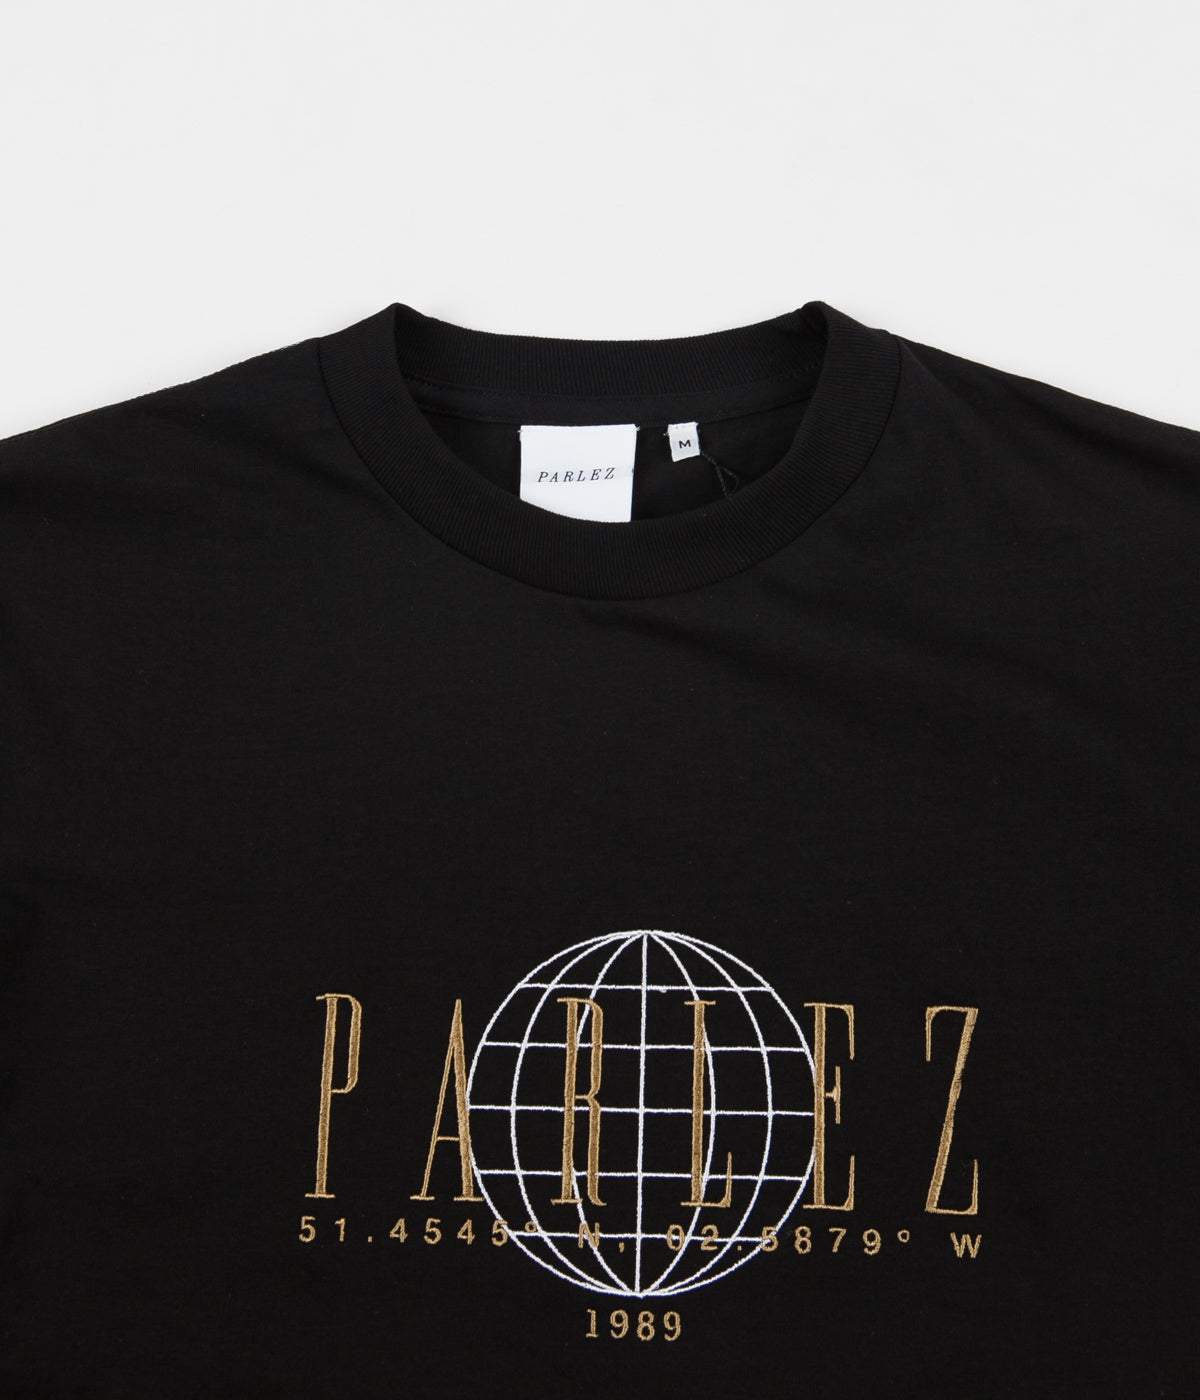 Parlez Global T-Shirt - Black